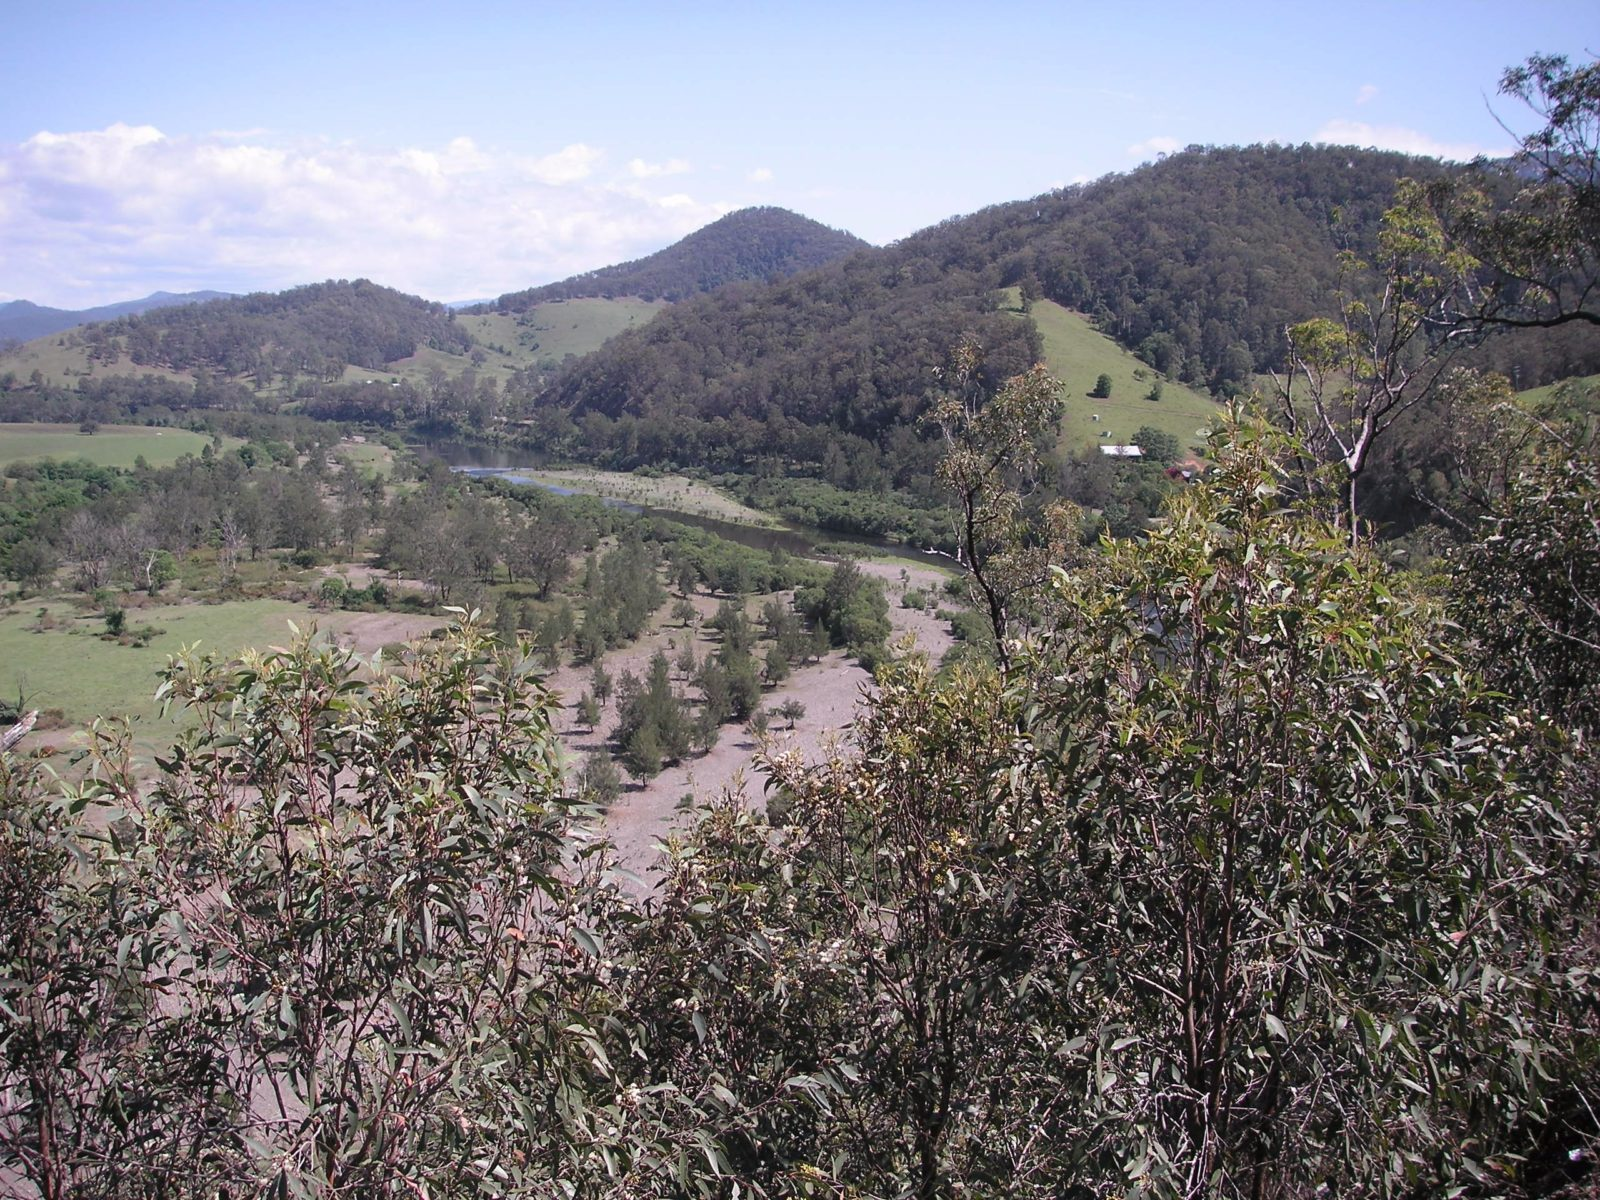 Macleay valley